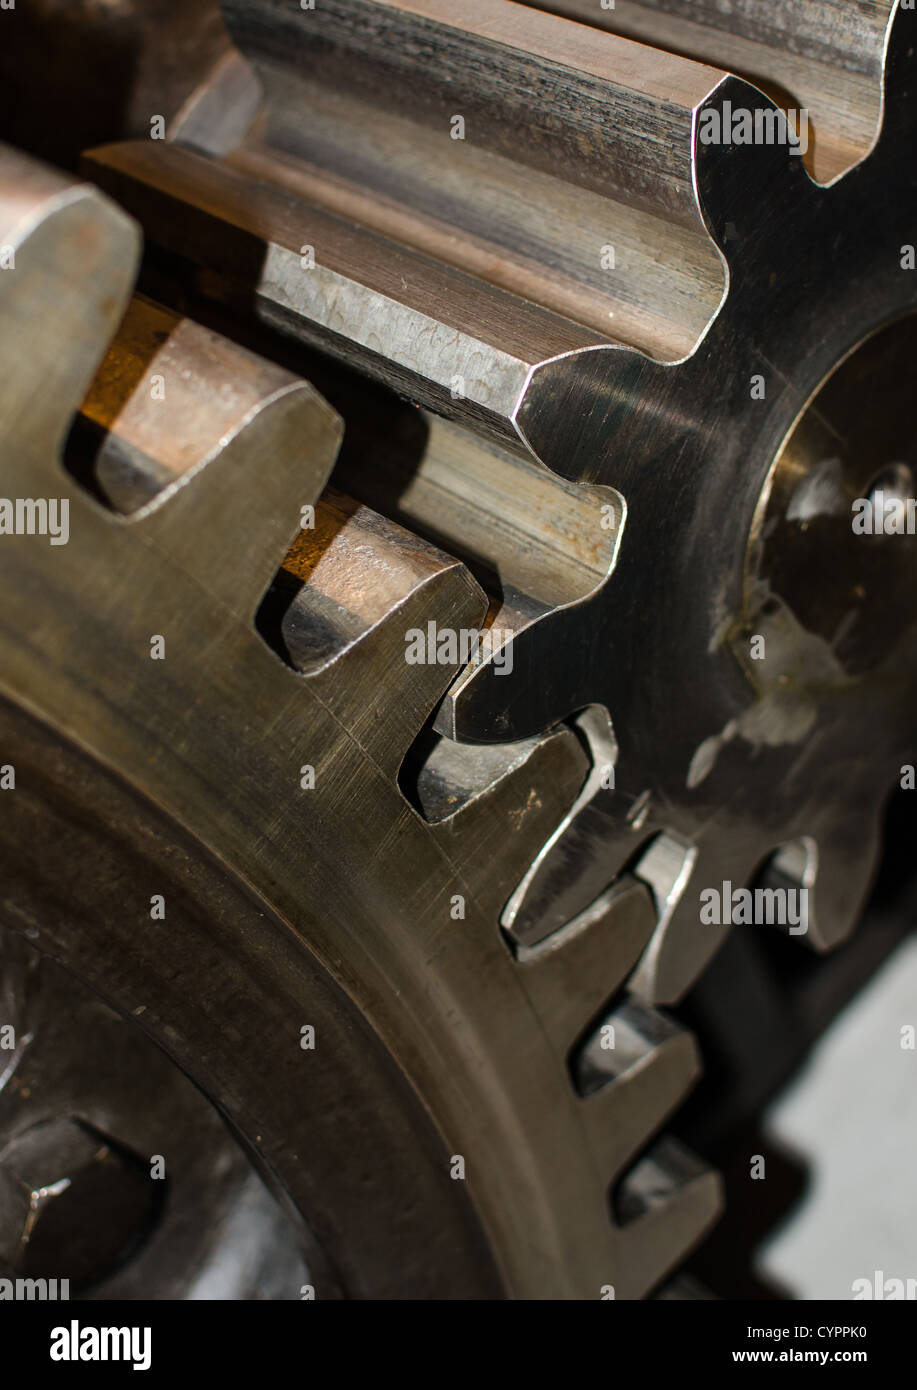 cooperation of two industrial ragwheels in detail - Stock Image